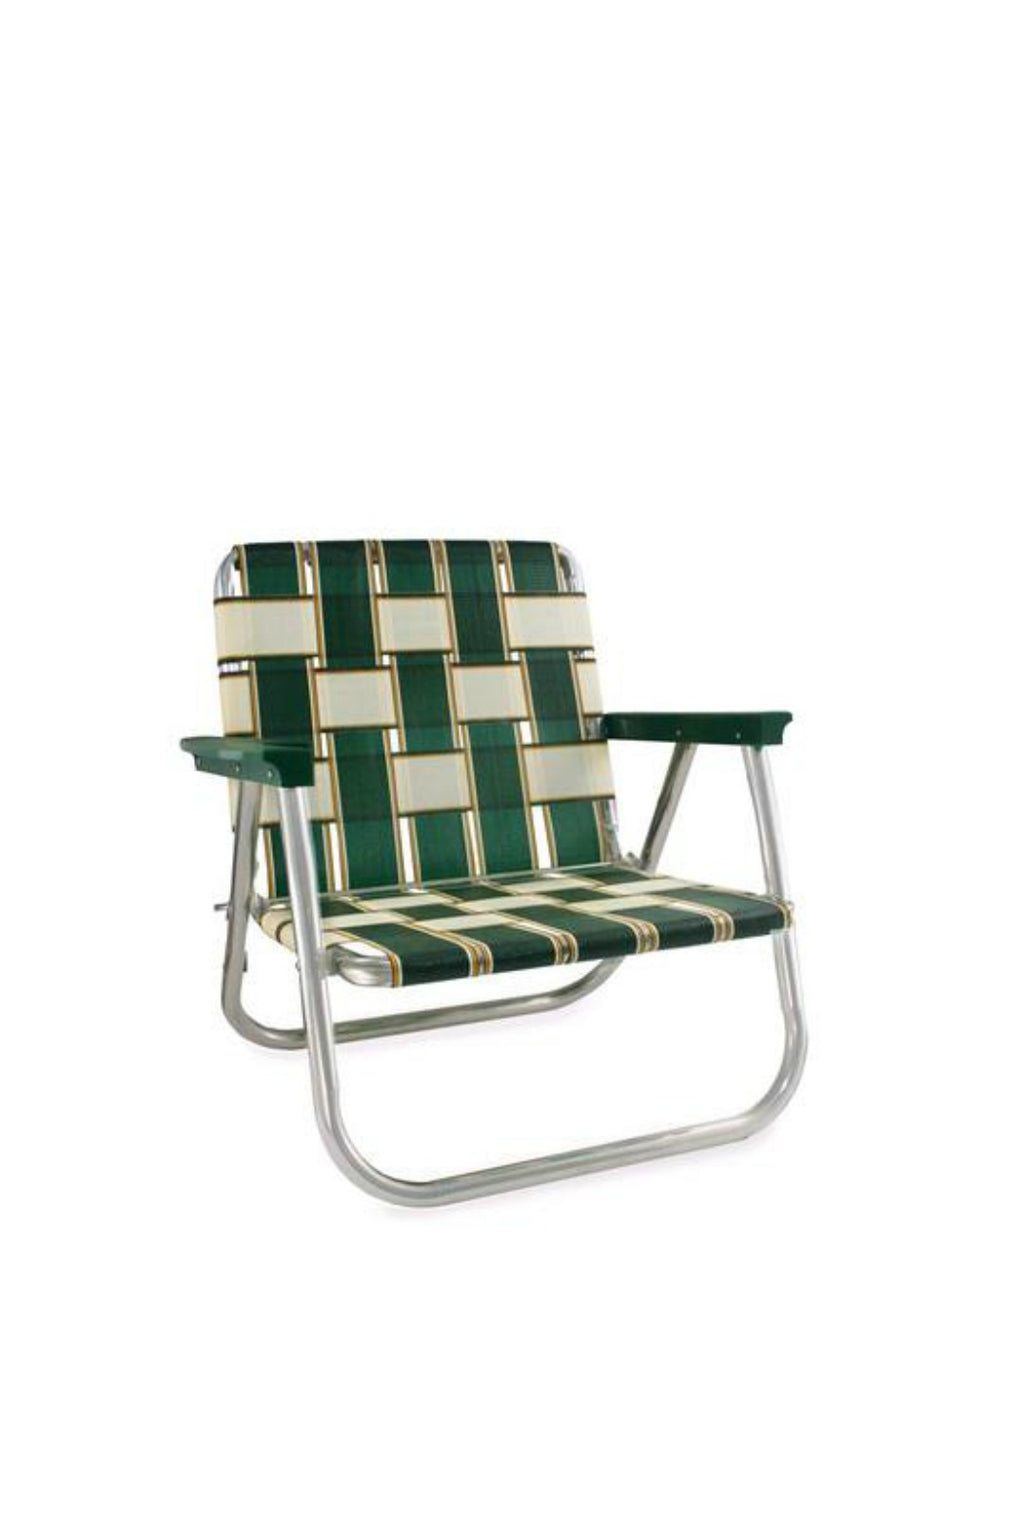 Lowback Beach Chair - Charleston